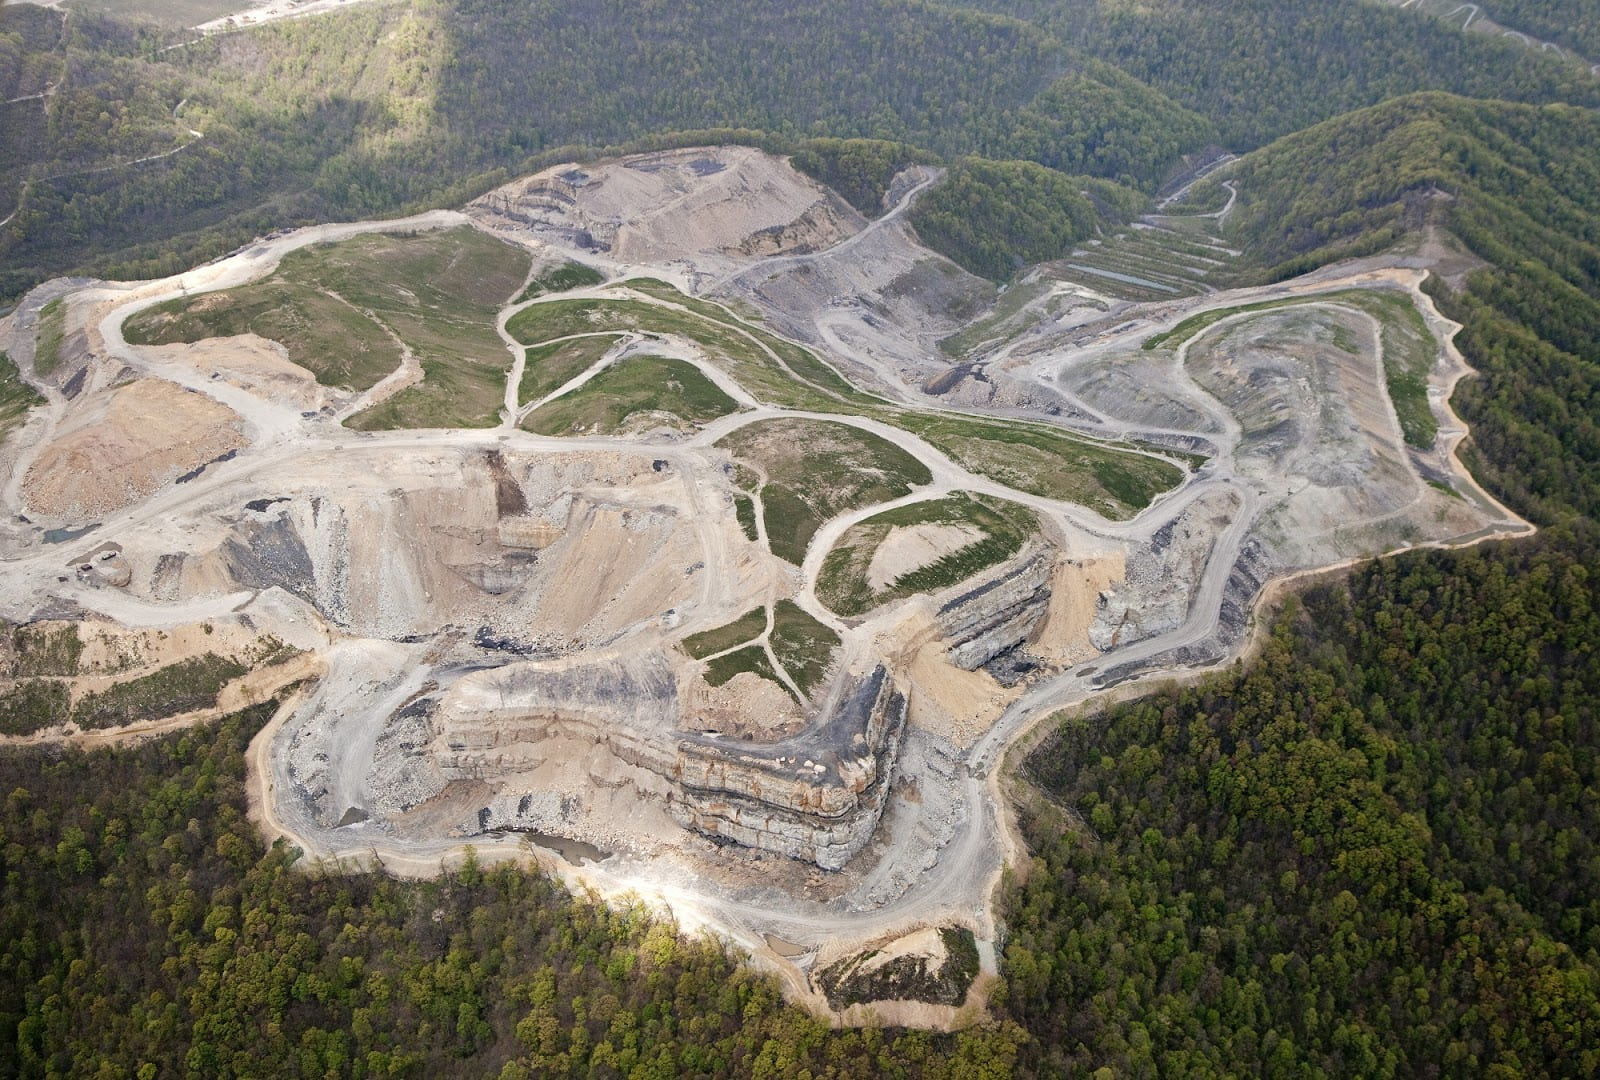 Mountaintop removal coal mining, aerial photograph.